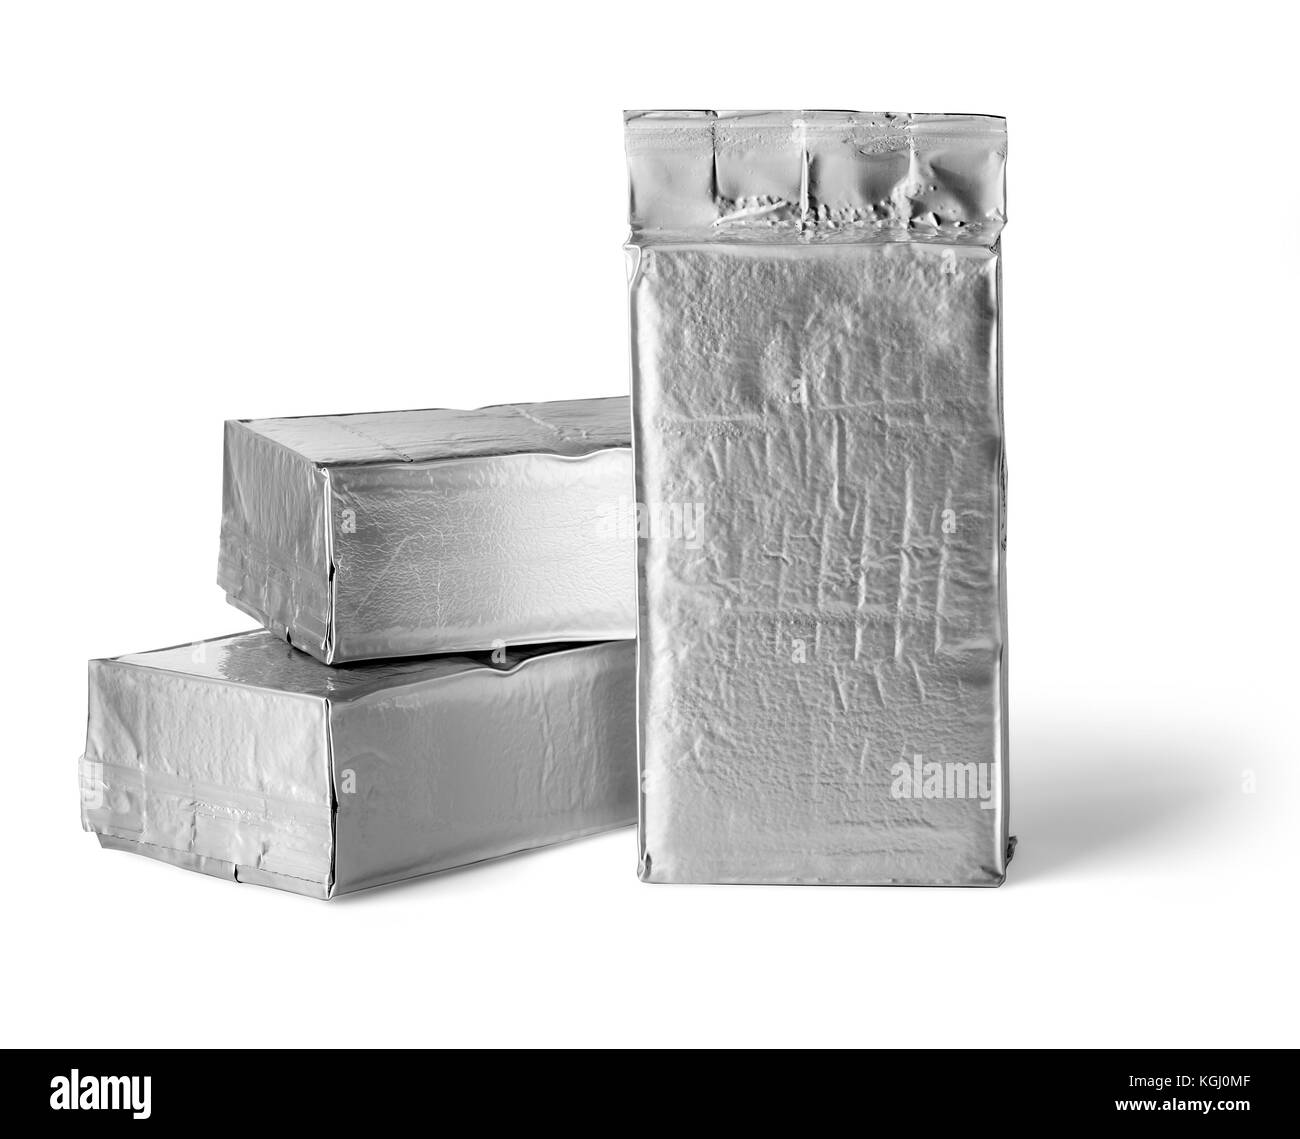 blank silver product packaging on white background with clipping path - Stock Image